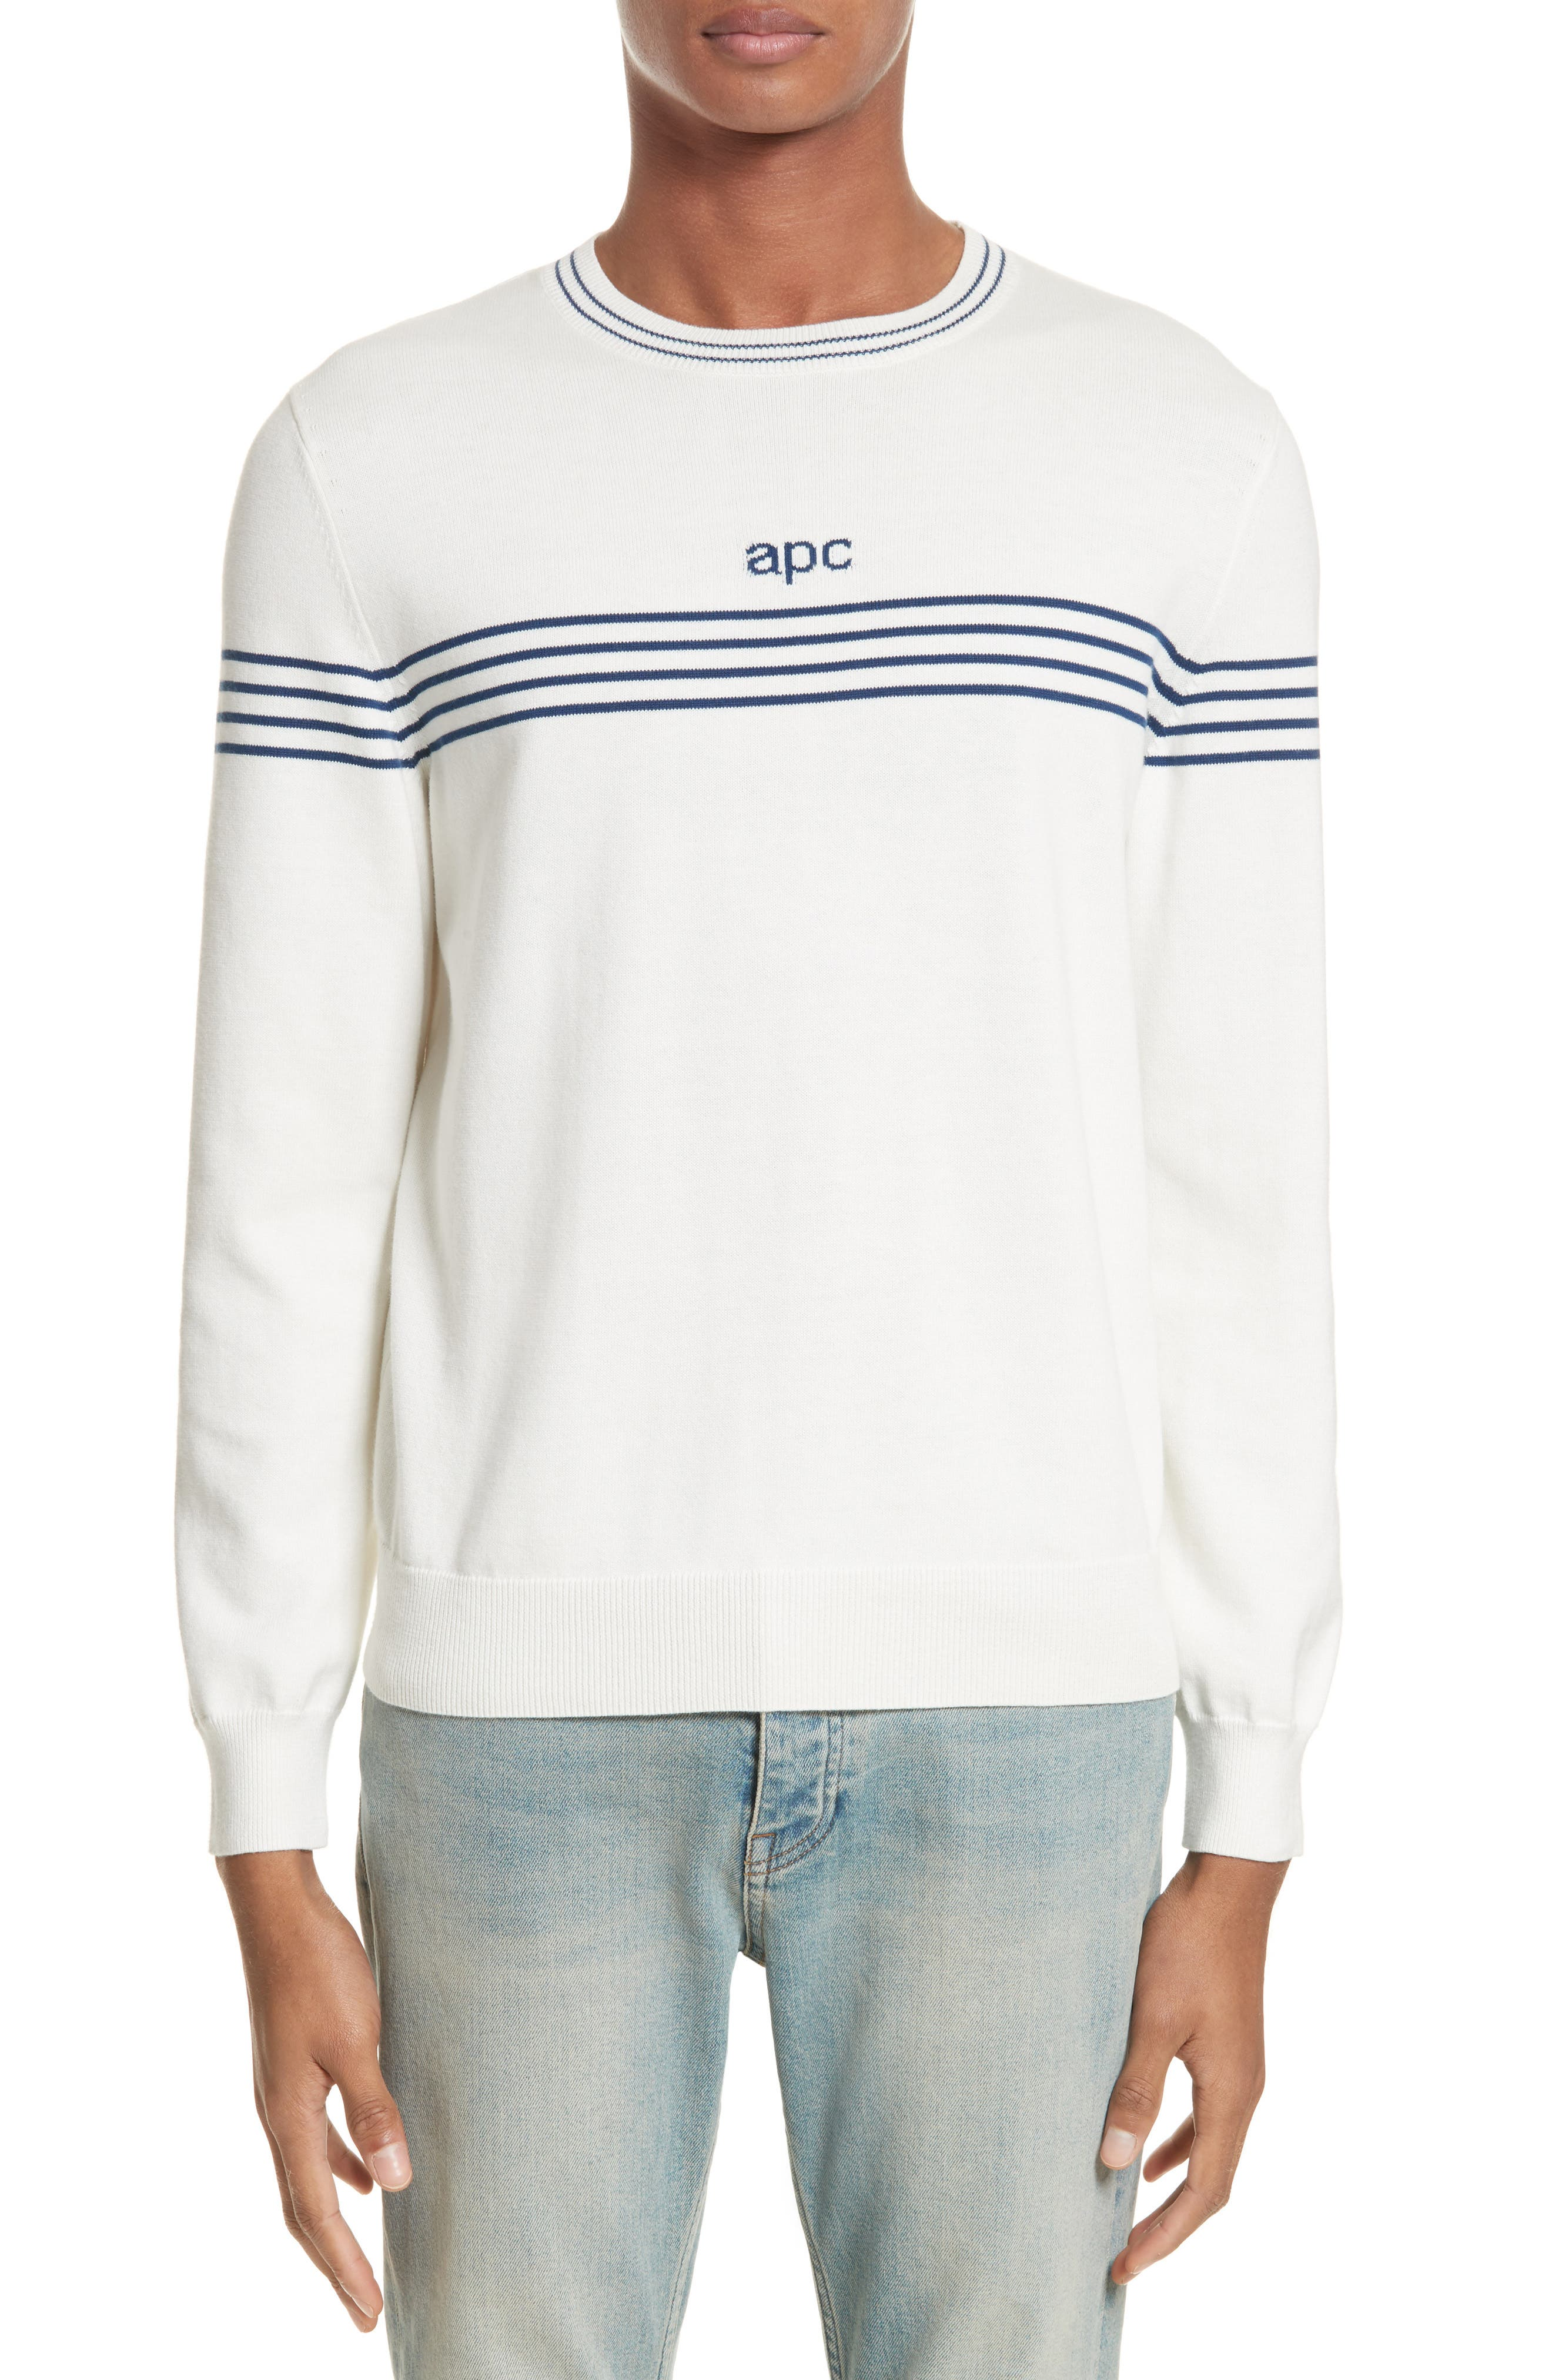 A.P.C. Logo Cotton & Cashmere Crewneck Sweater